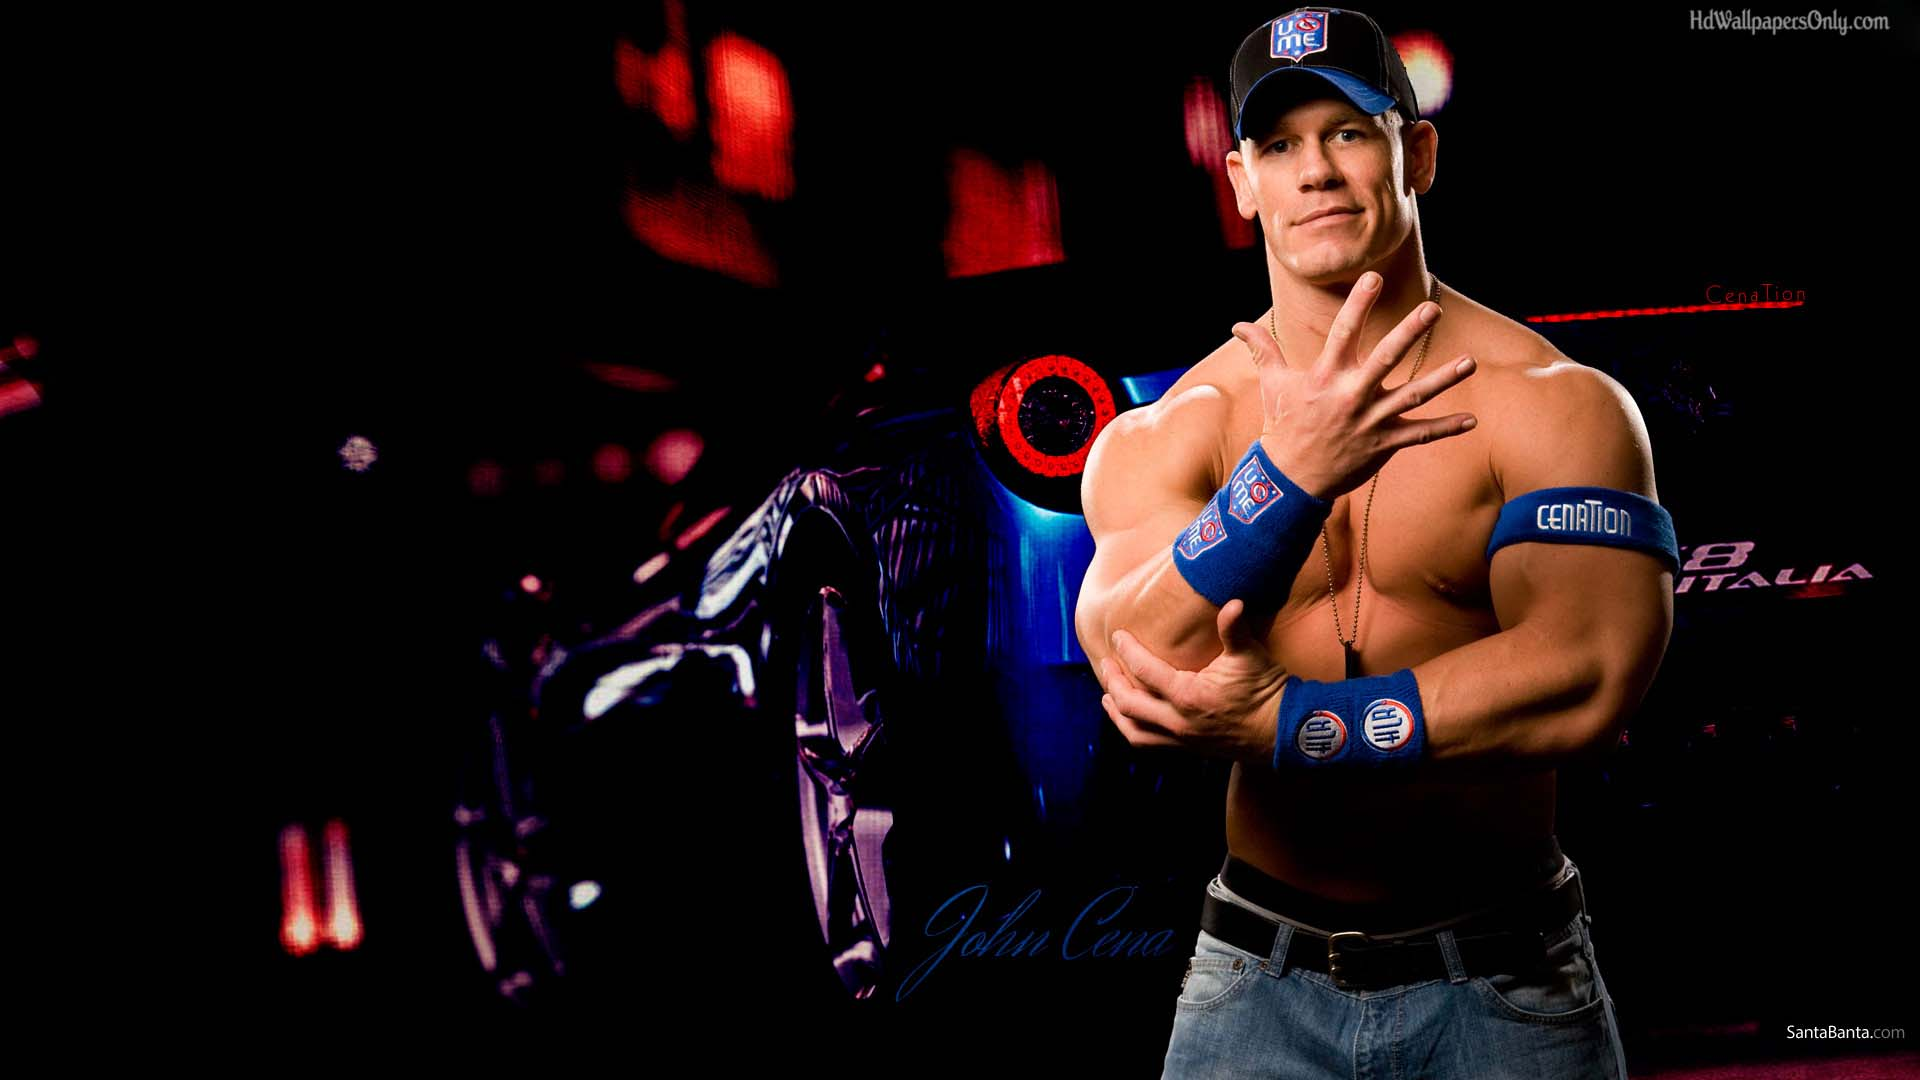 John Cena HD Wallpaper 2014